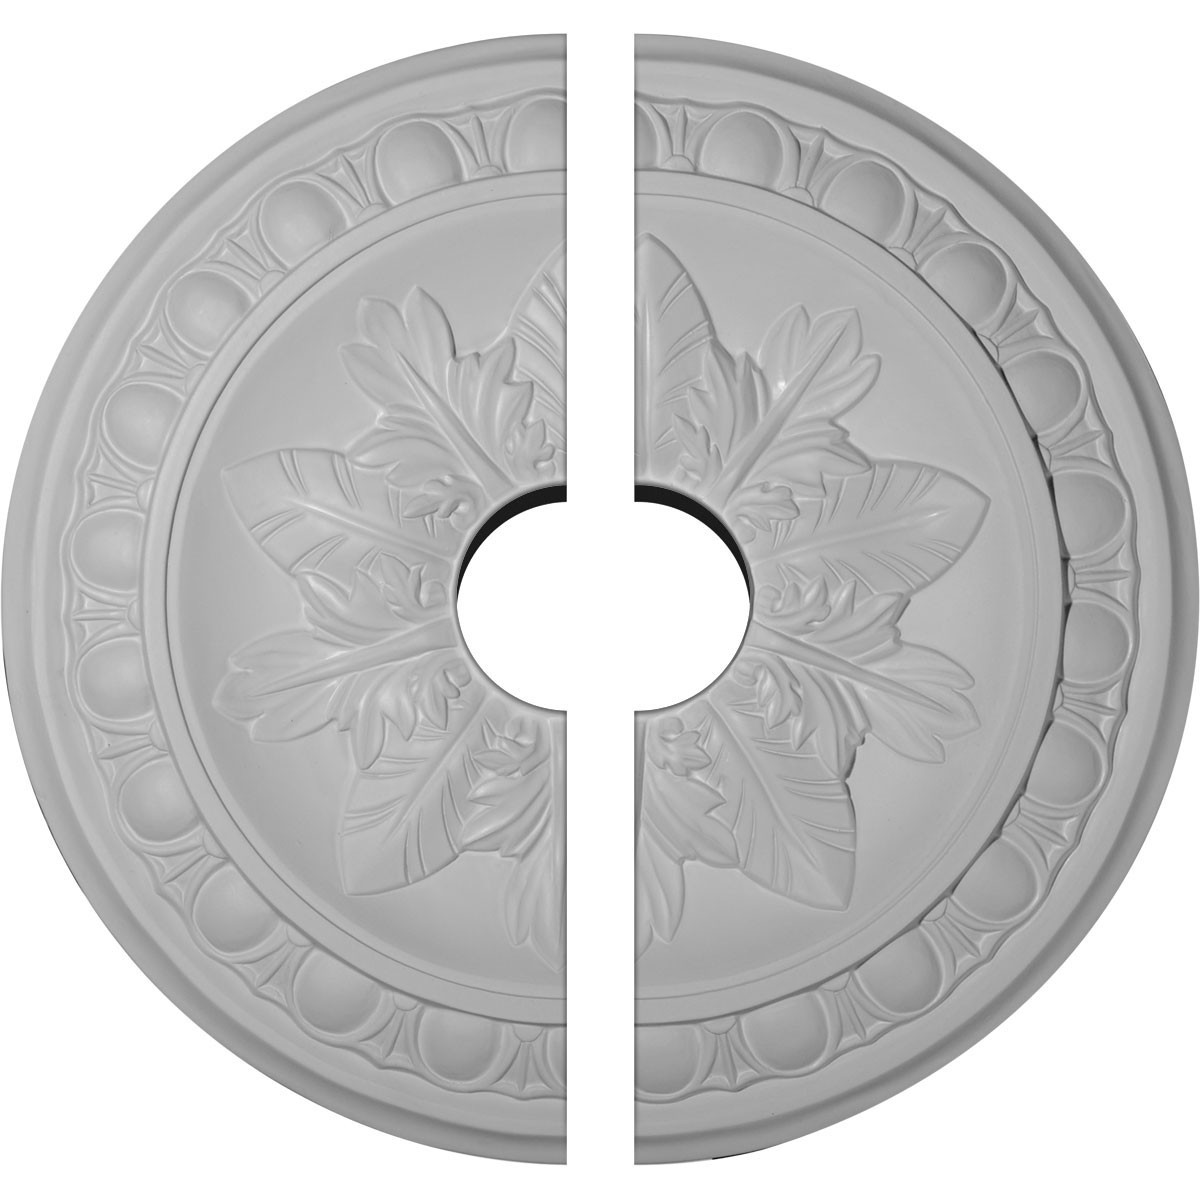 "EM-CM17EX2-03500 - 17 3/4""OD x 3 1/2""ID x 1 1/8""P Exeter Ceiling Medallion, Two Piece (Fits Canopies up to 3 1/2"")"